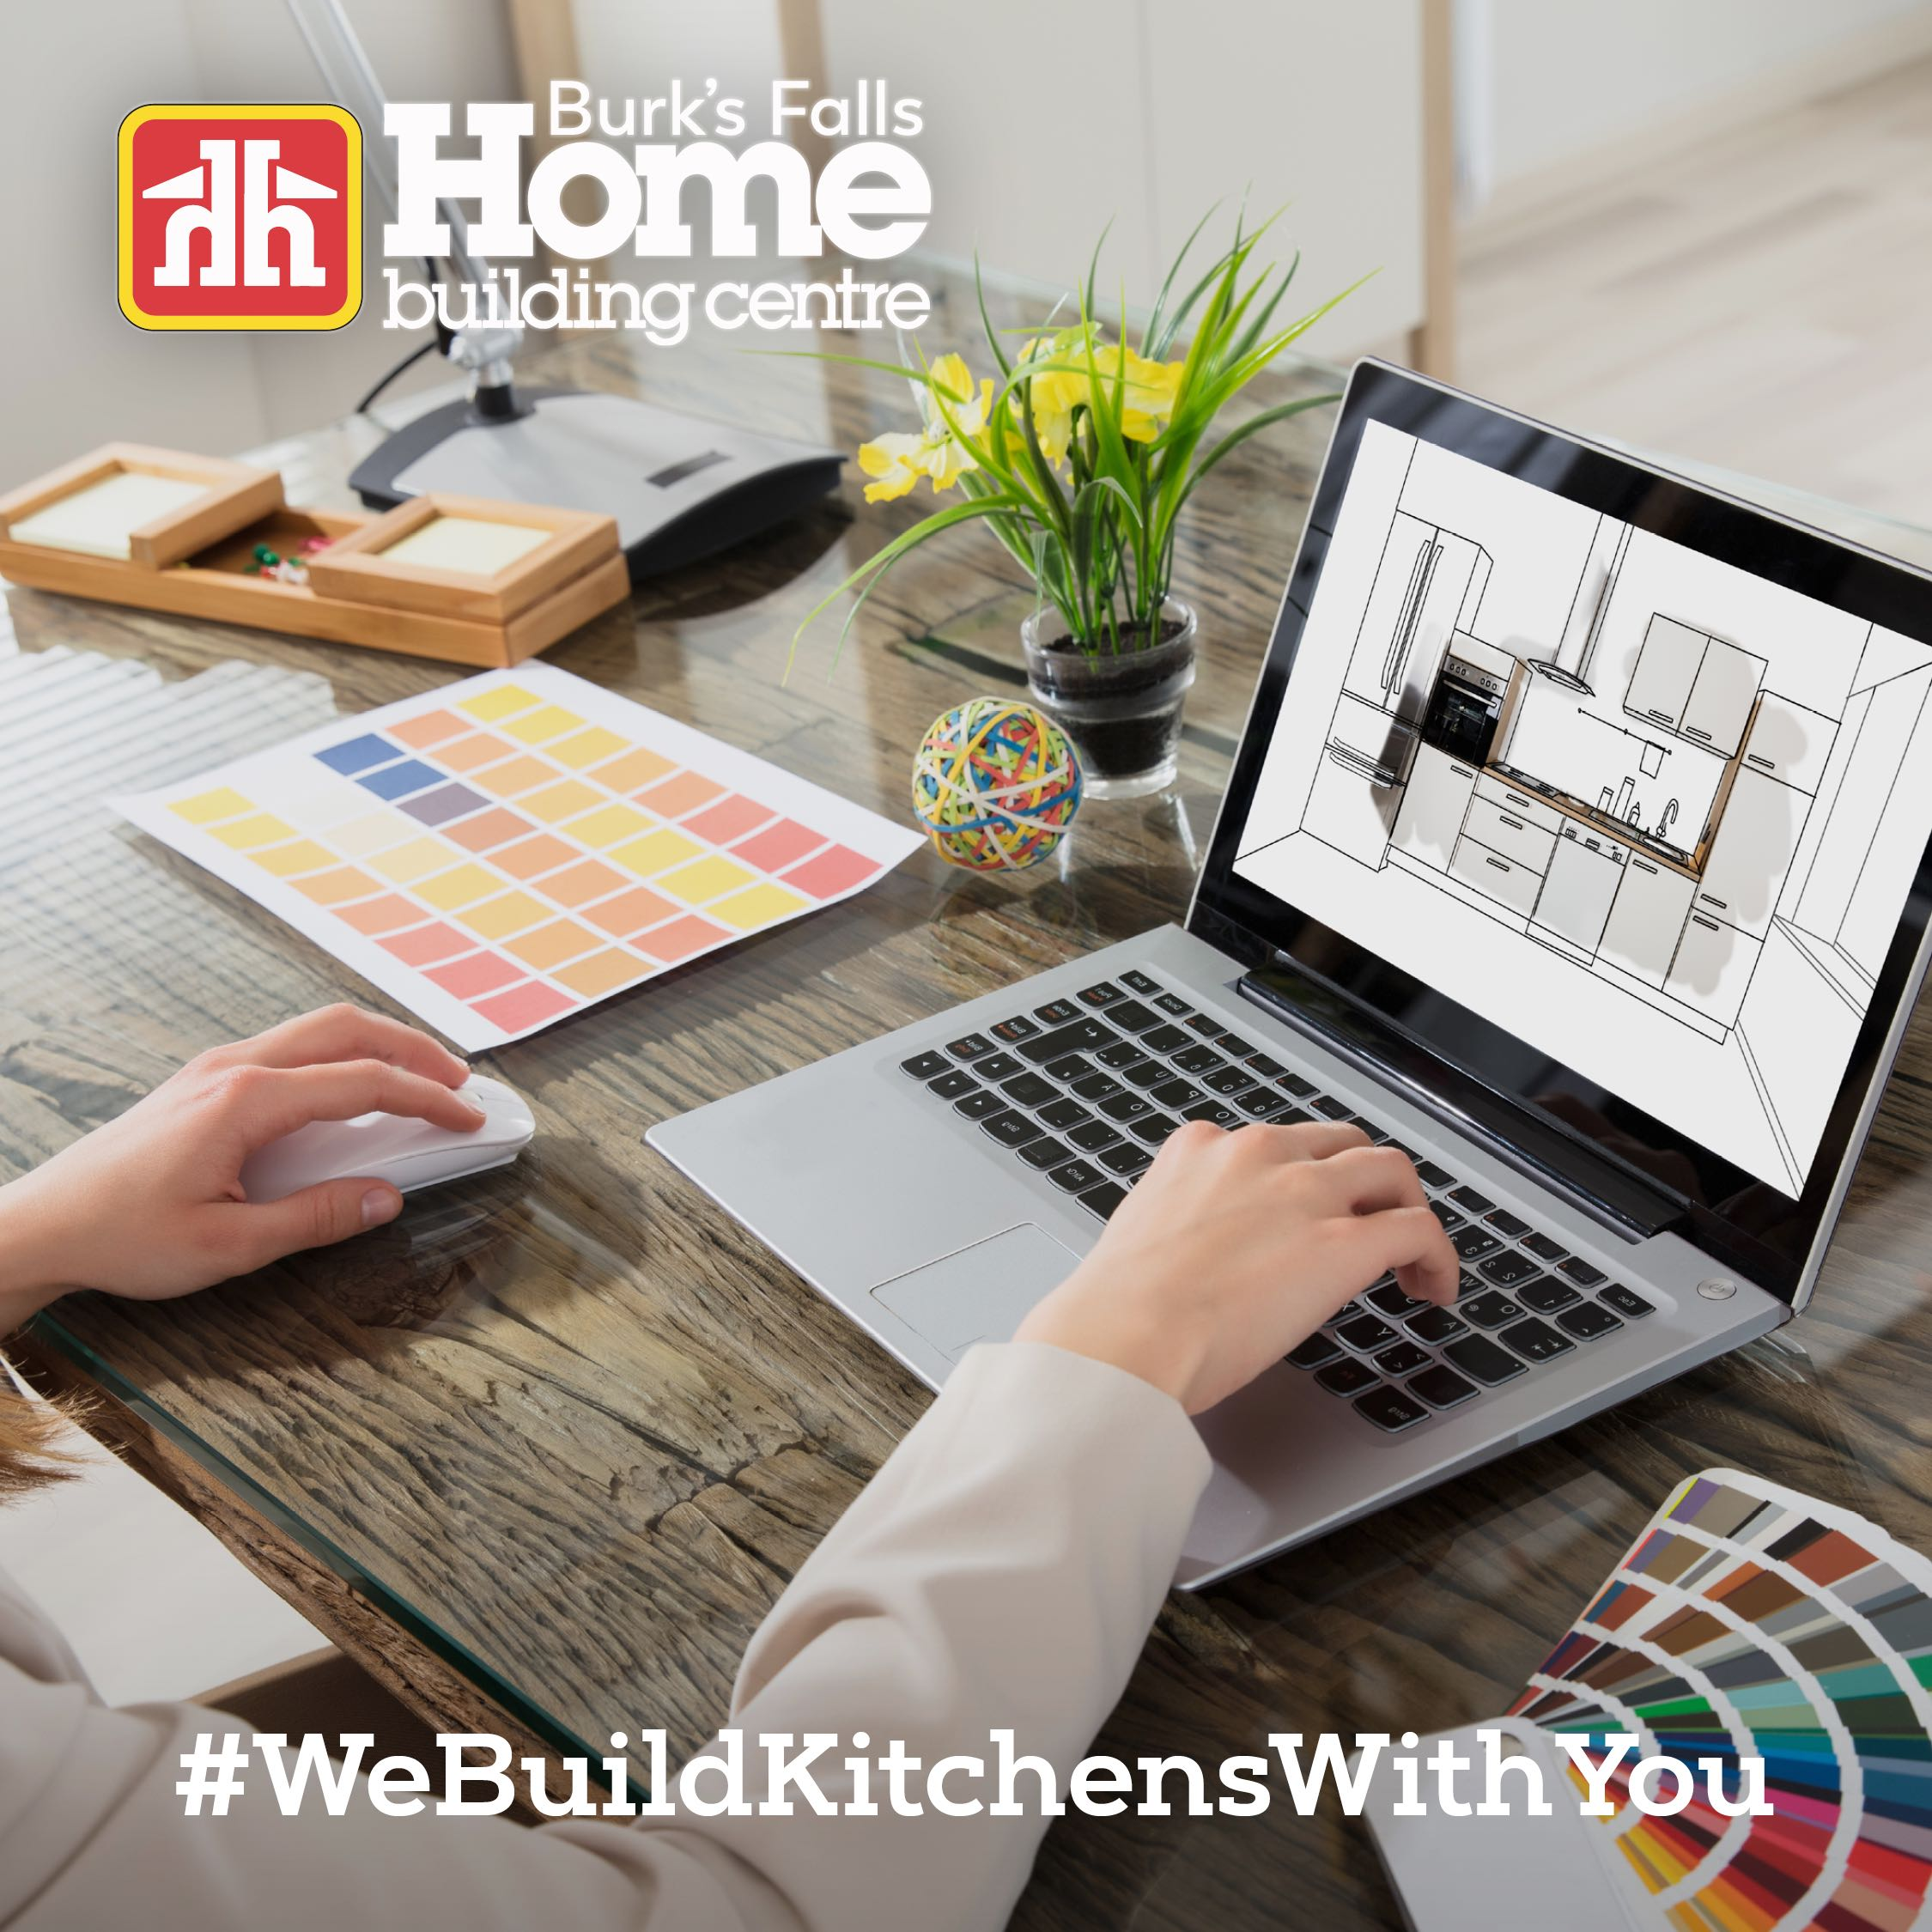 LET'S DESIGN IT TOGETHER! - Is it time to upgrade the kitchen? Burks' Falls Building Centre has a breadth of kitchen finishes that will suit your taste. Stop by Burk's Falls Home Building Centre and ask for Devin. He can help bring your inspiration to life!